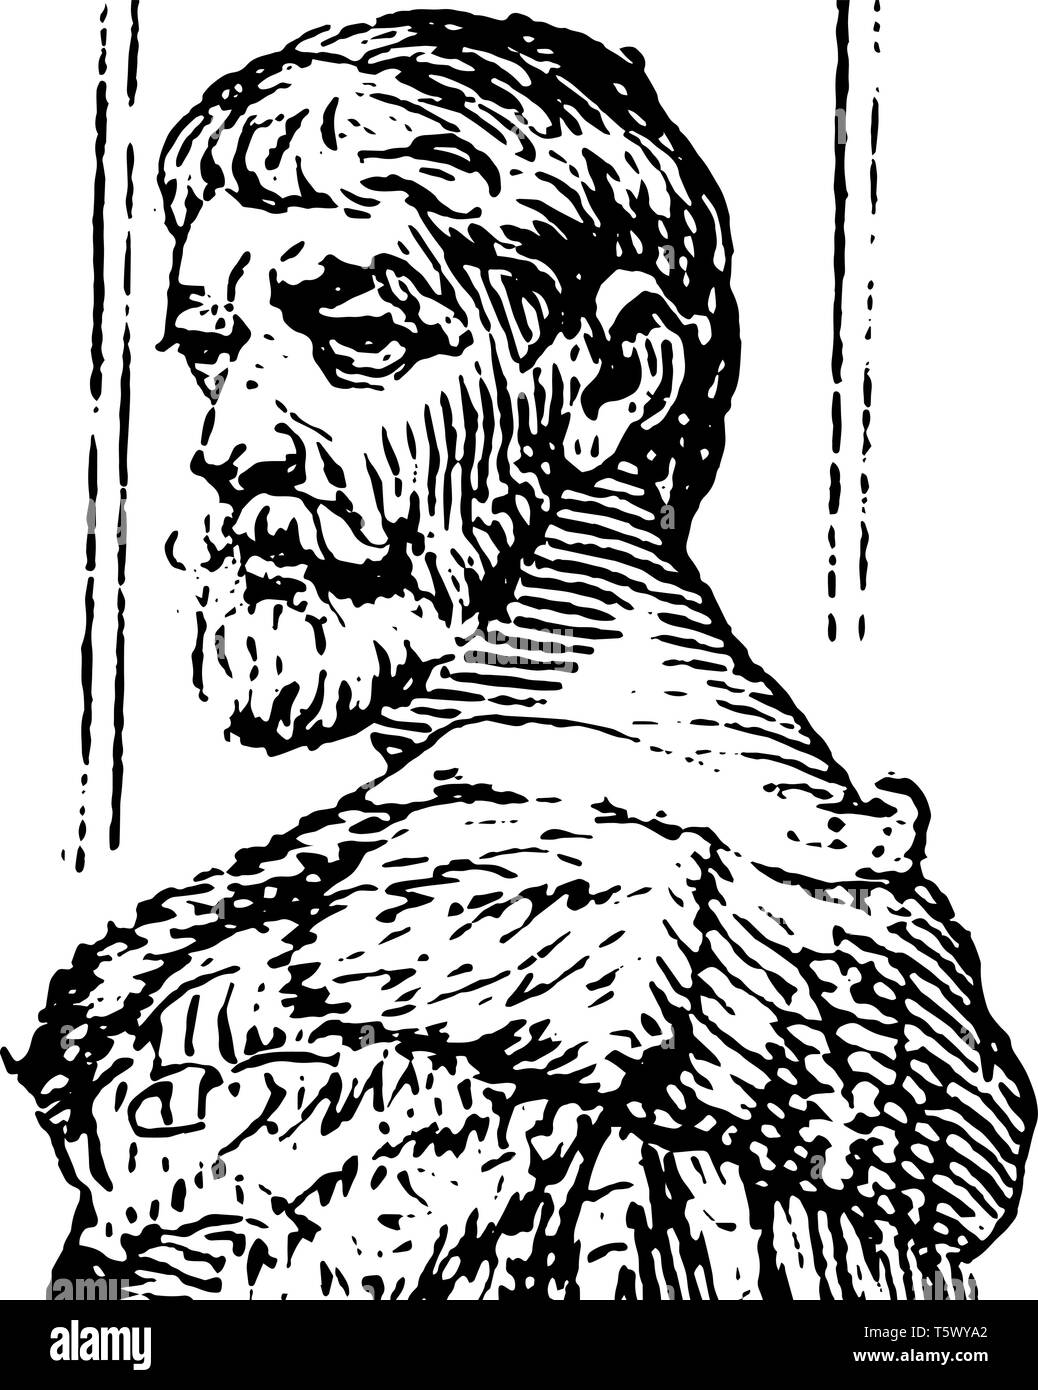 Benvenuto Cellini 1500 to 1571 he was an Italian painter goldsmith draftsman sculptor and musician of the Renaissance famous for his autobiography and - Stock Vector